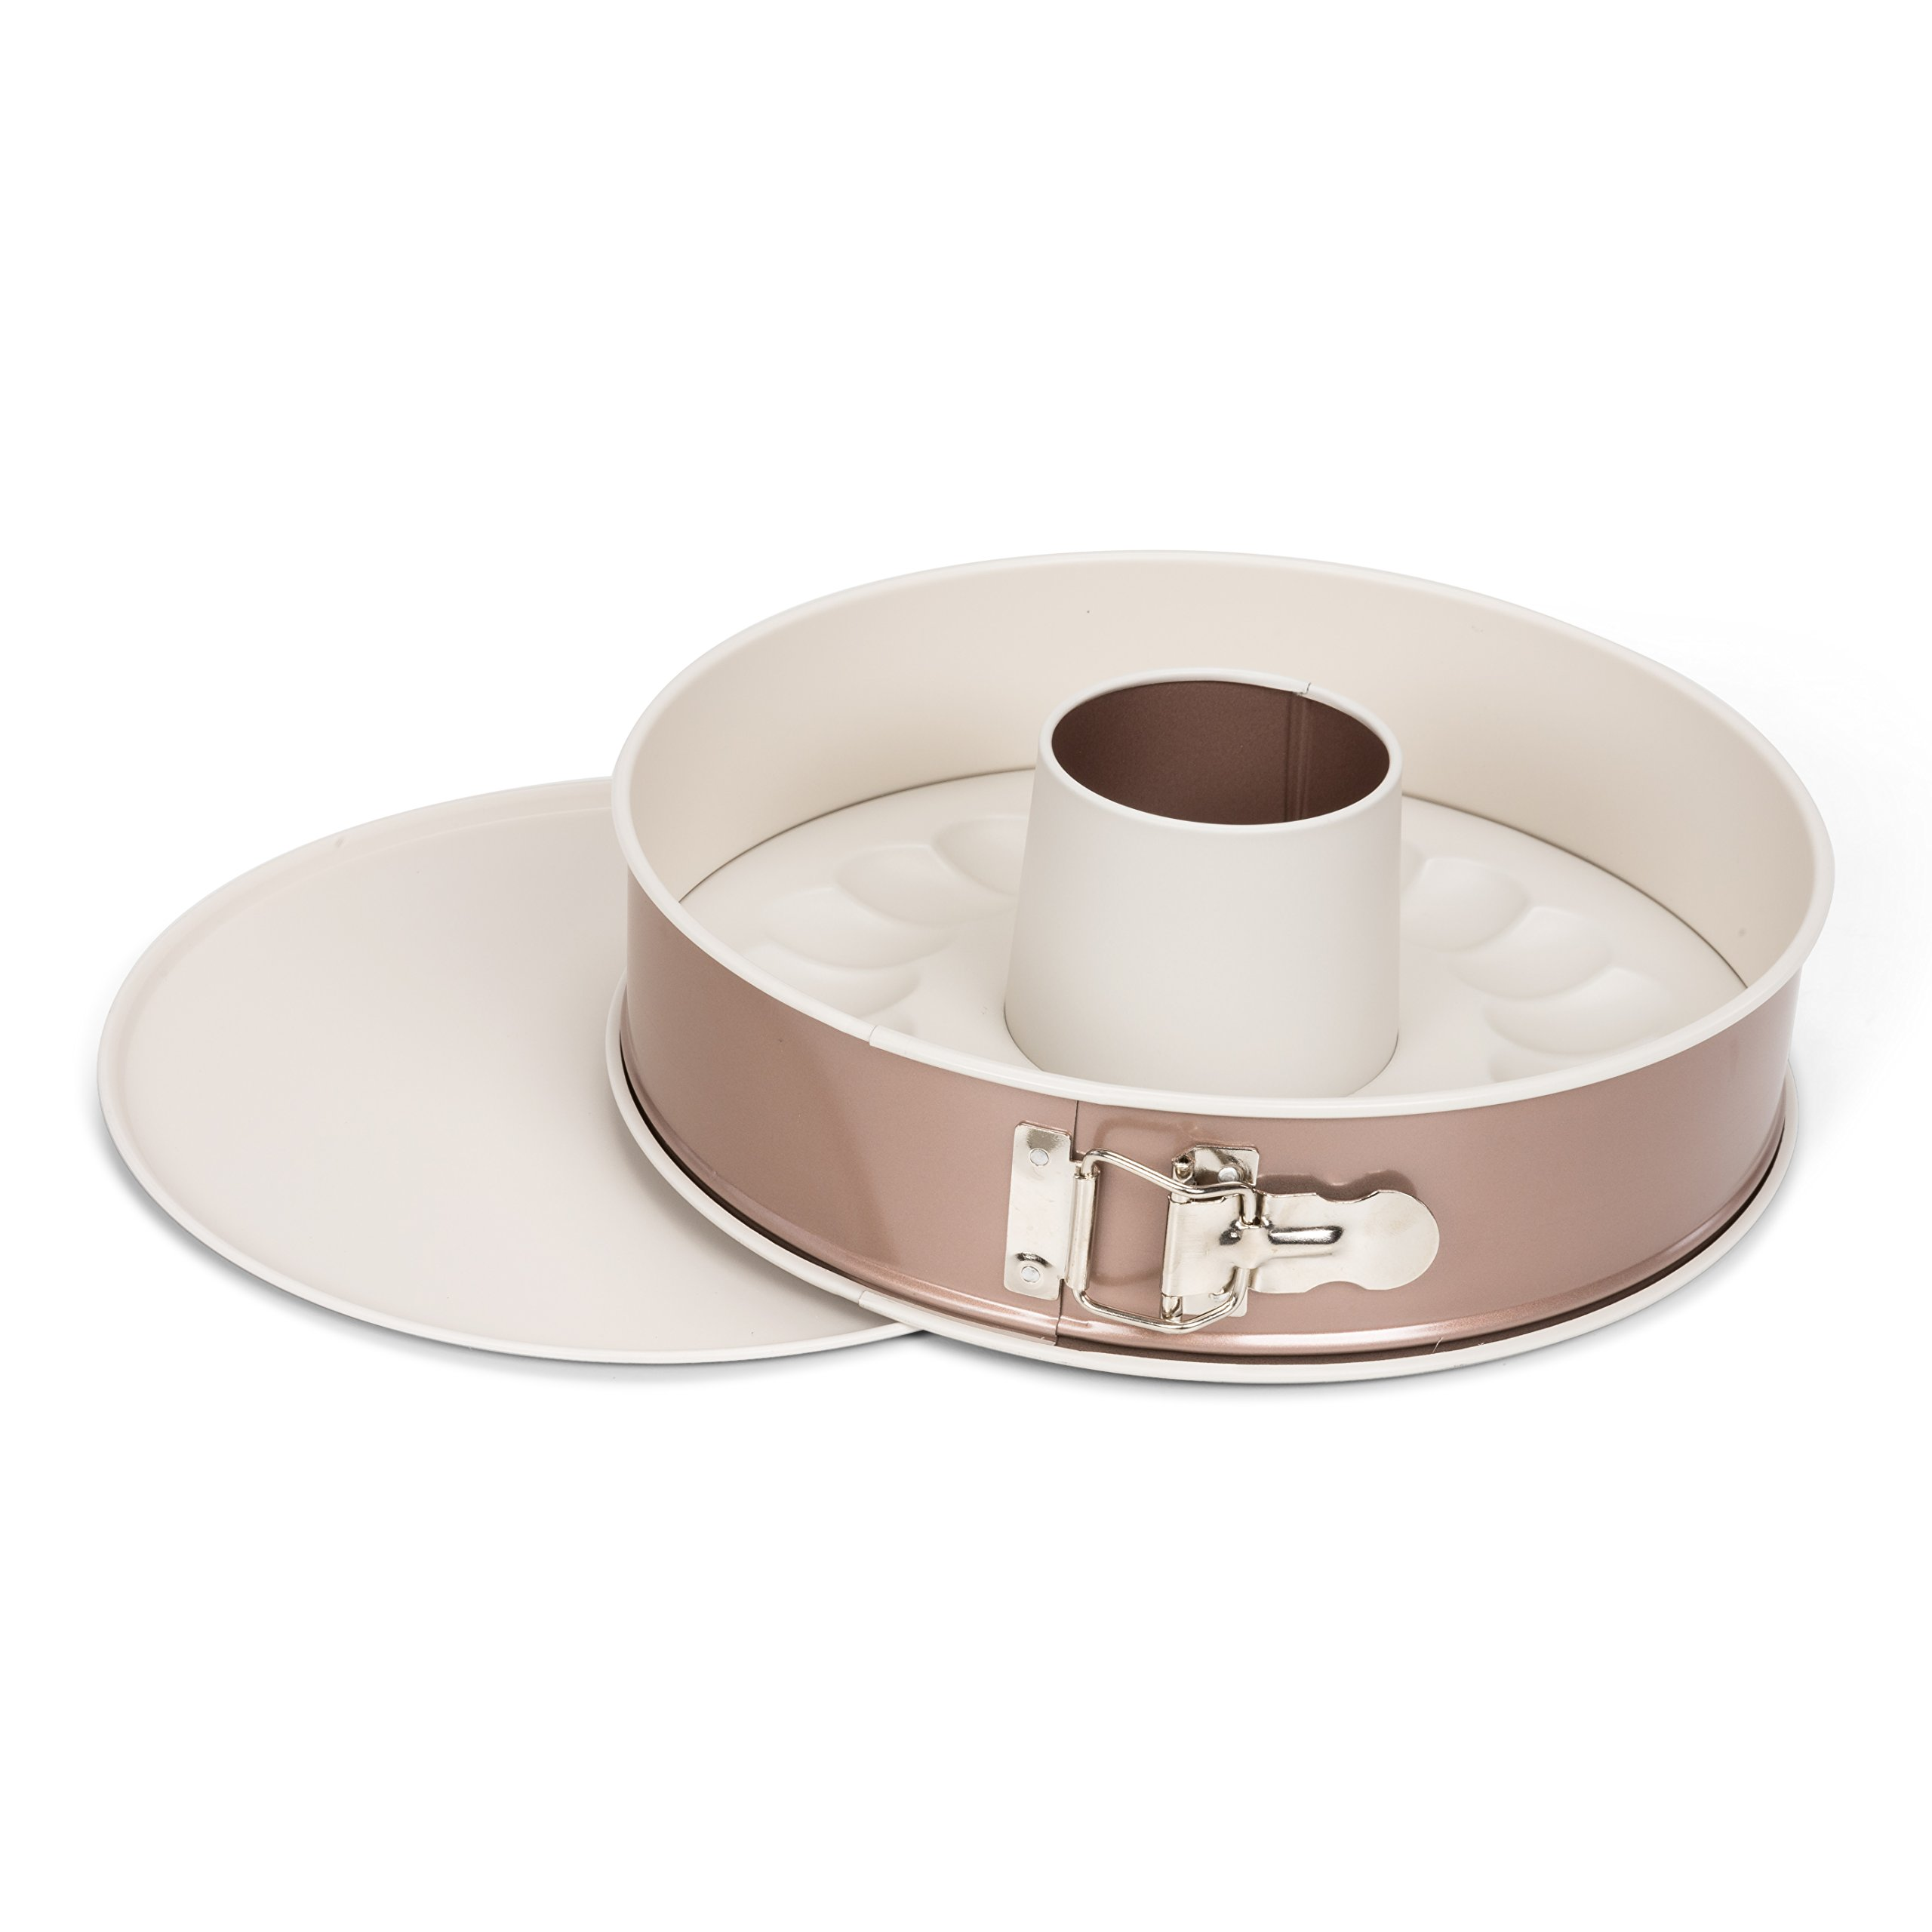 Patisse 03346 w/Extra Bottom Ceramic Springform Bundt Pan 10-1/4''(26 cm), 10.25'', Copper Off White